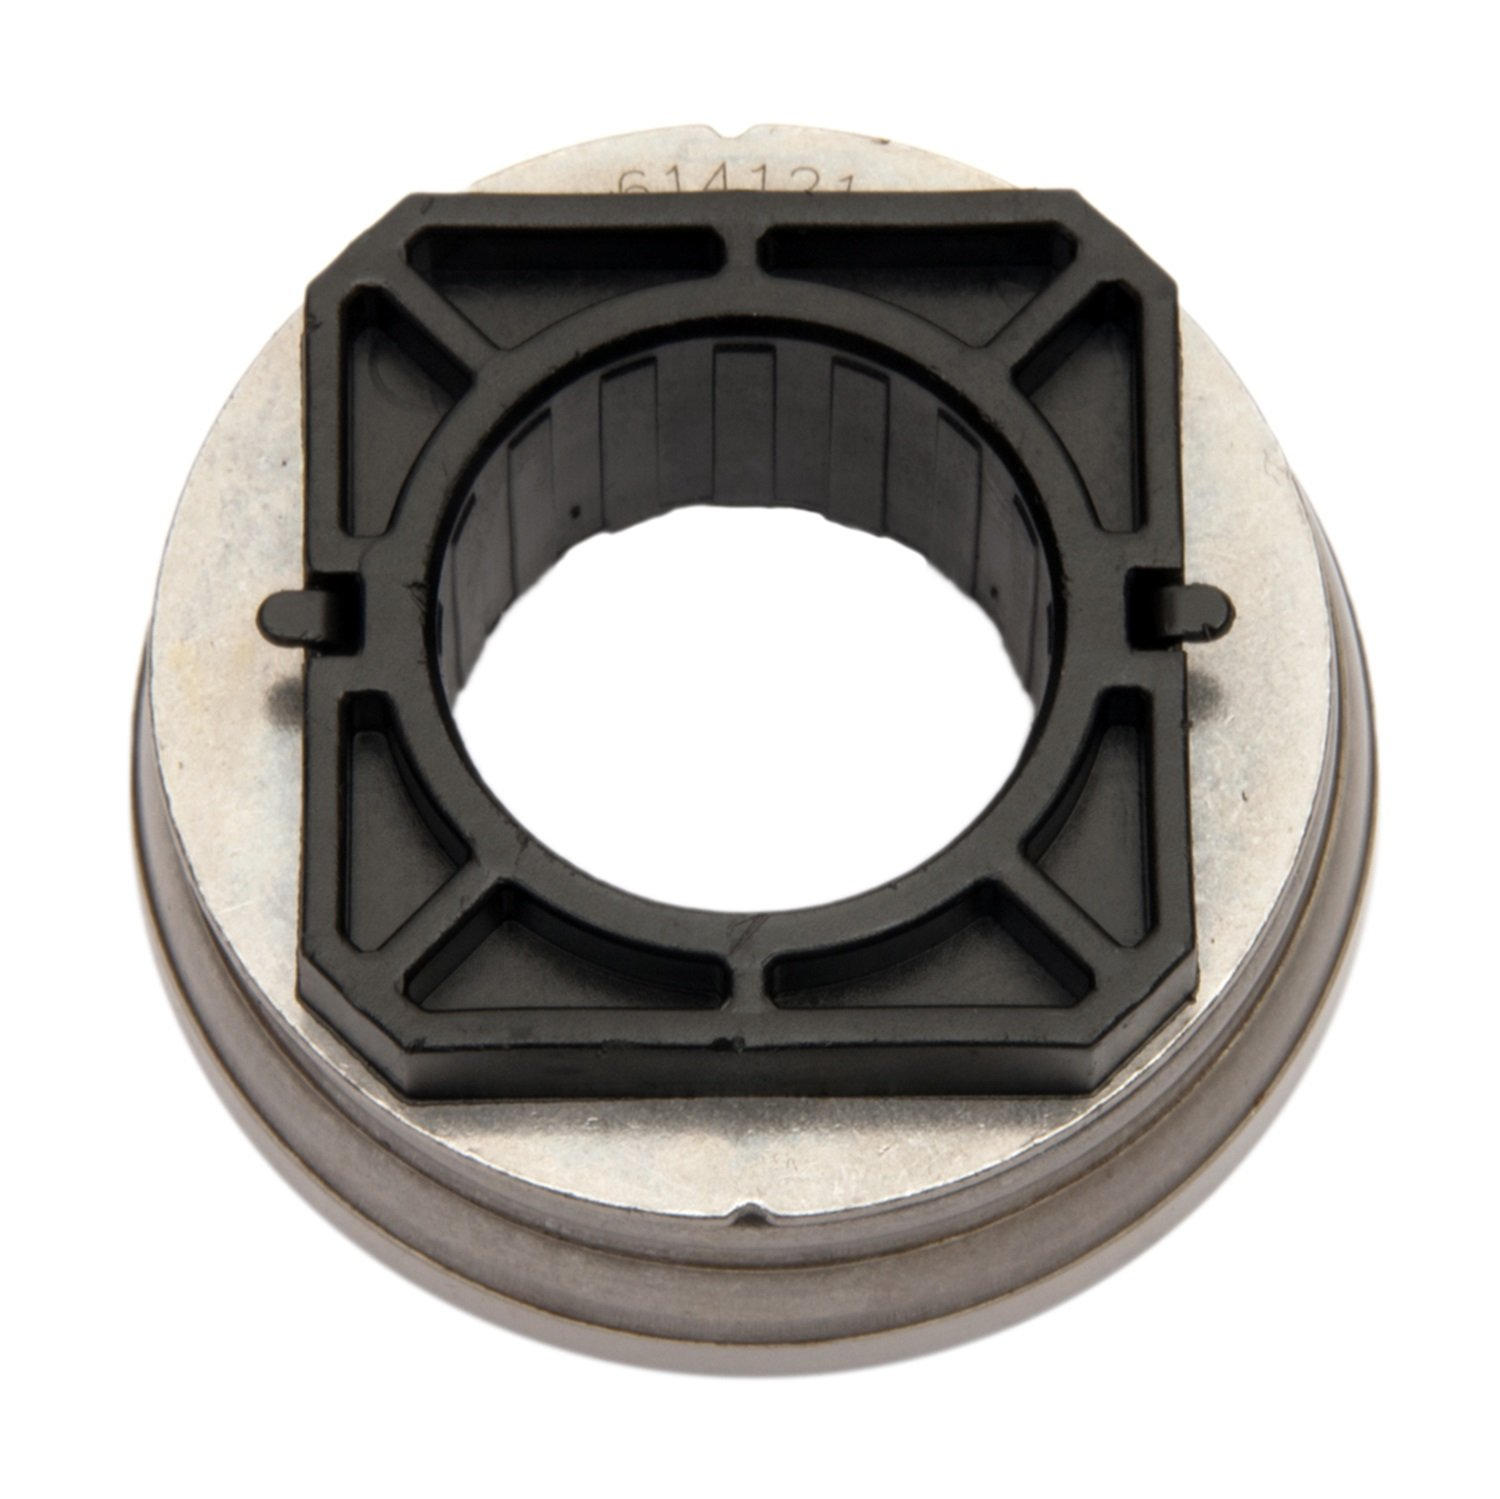 Centerforce 4166 Throw Out Bearing